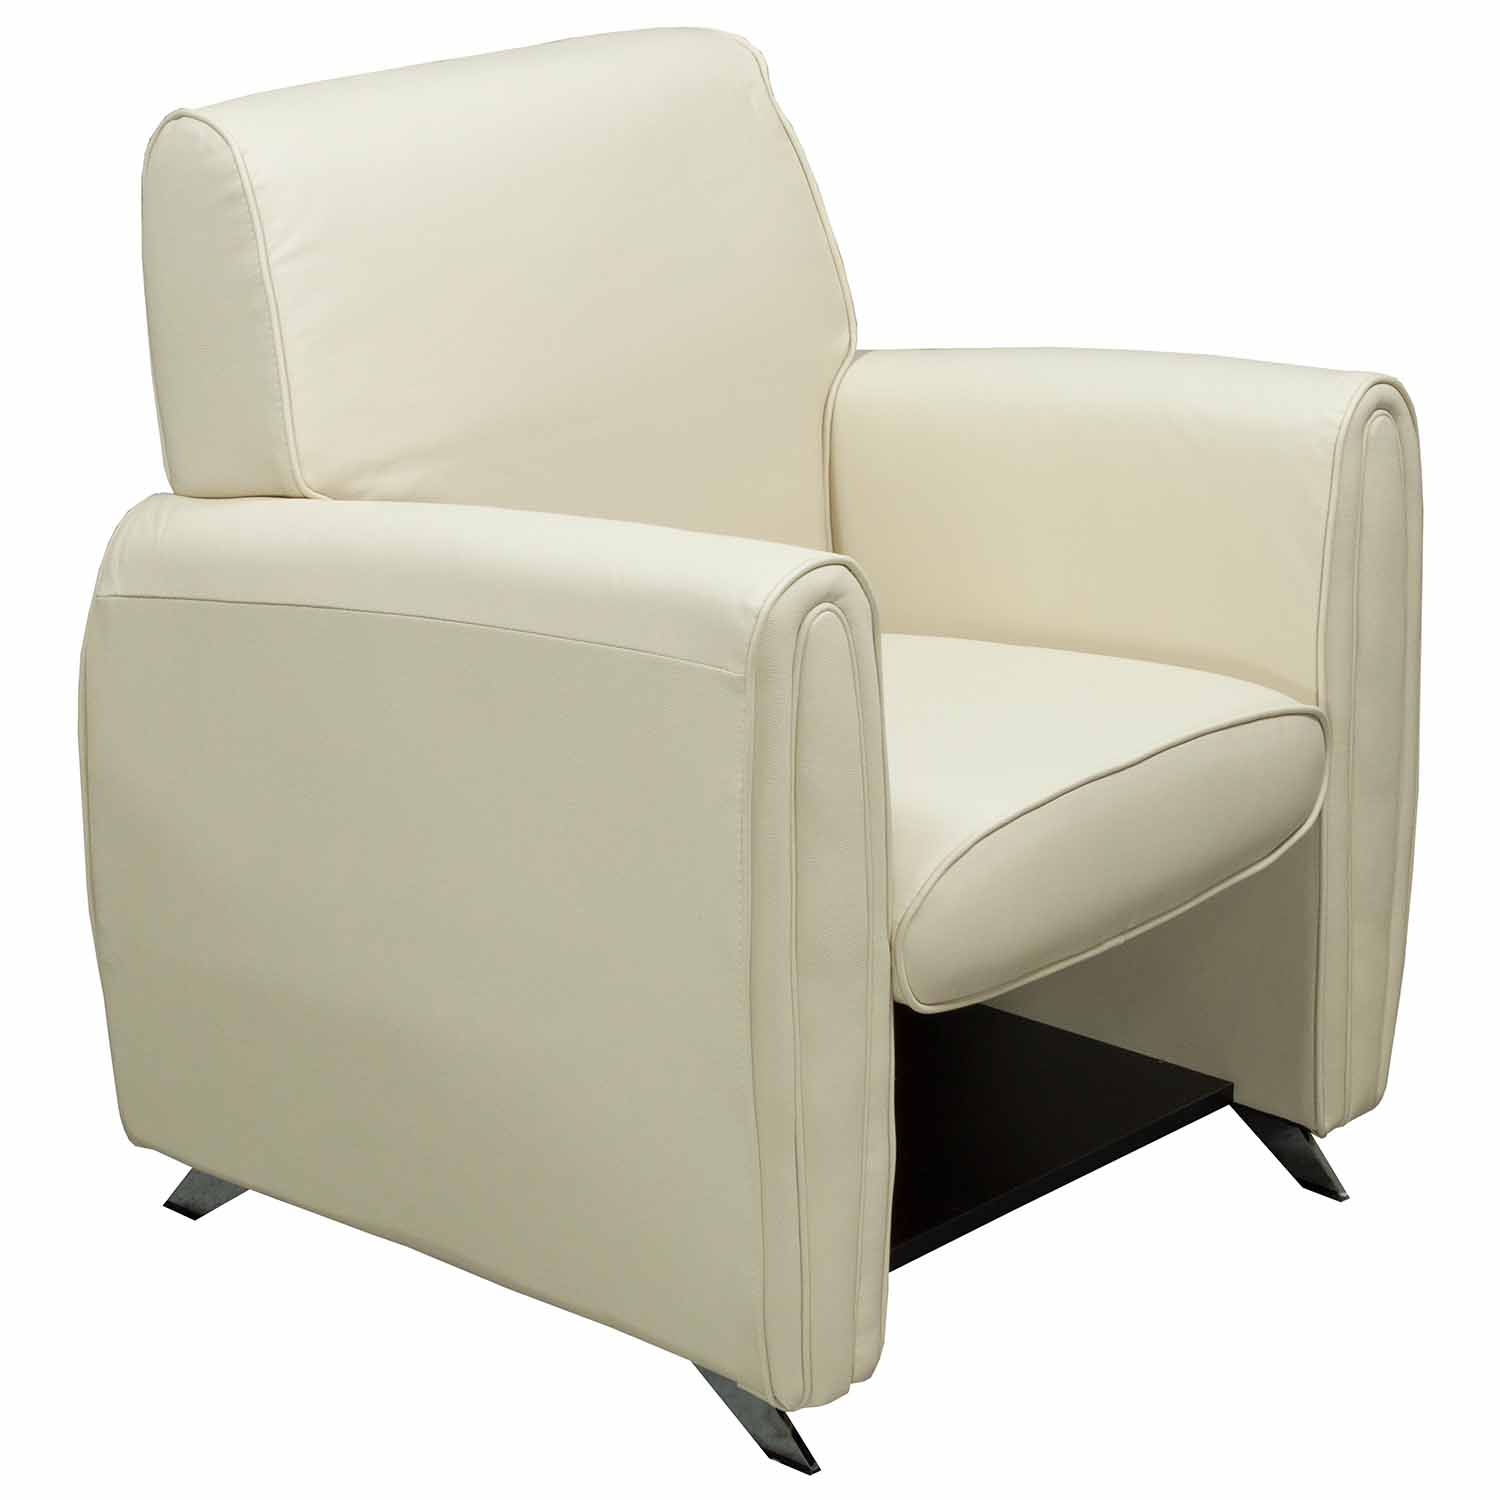 one seater sofa chair sectional with chaise recliner and sleeper gosit single seat leather sand national